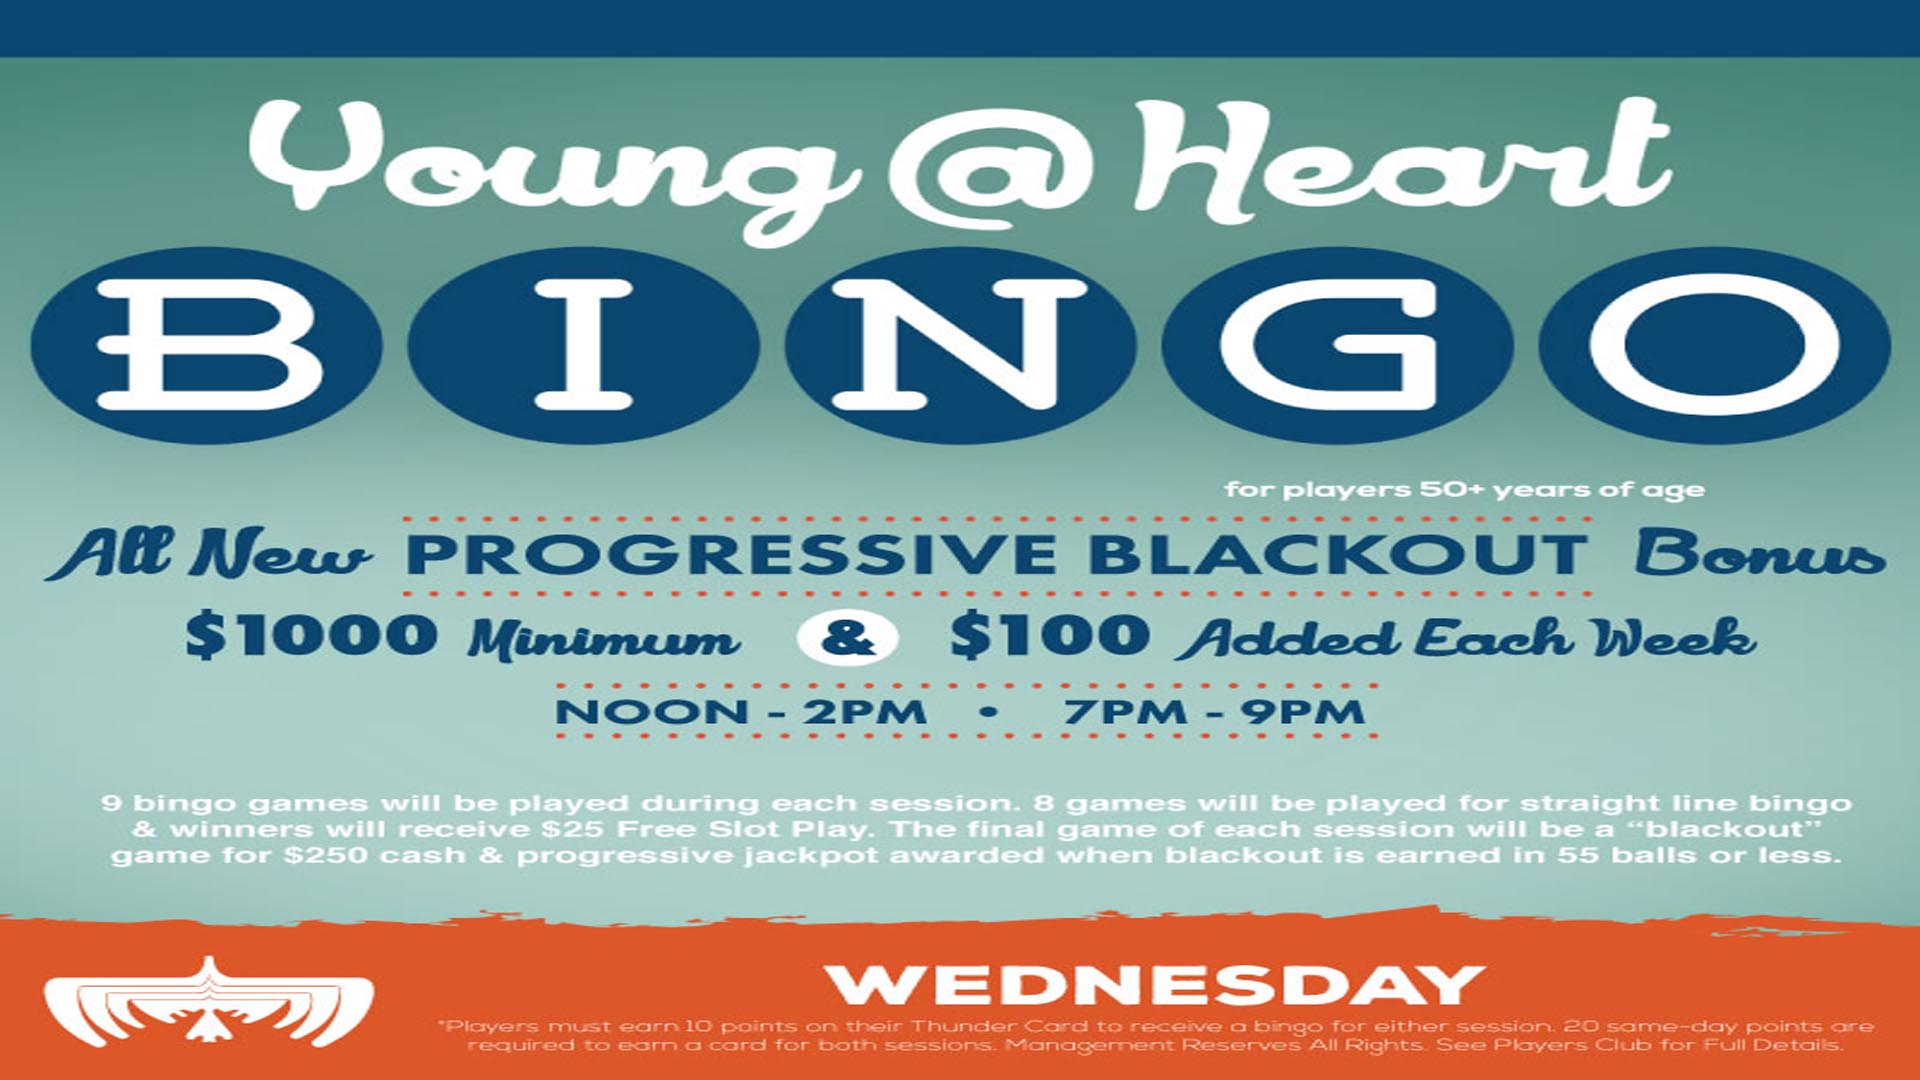 YOUNG @ HEART BINGO